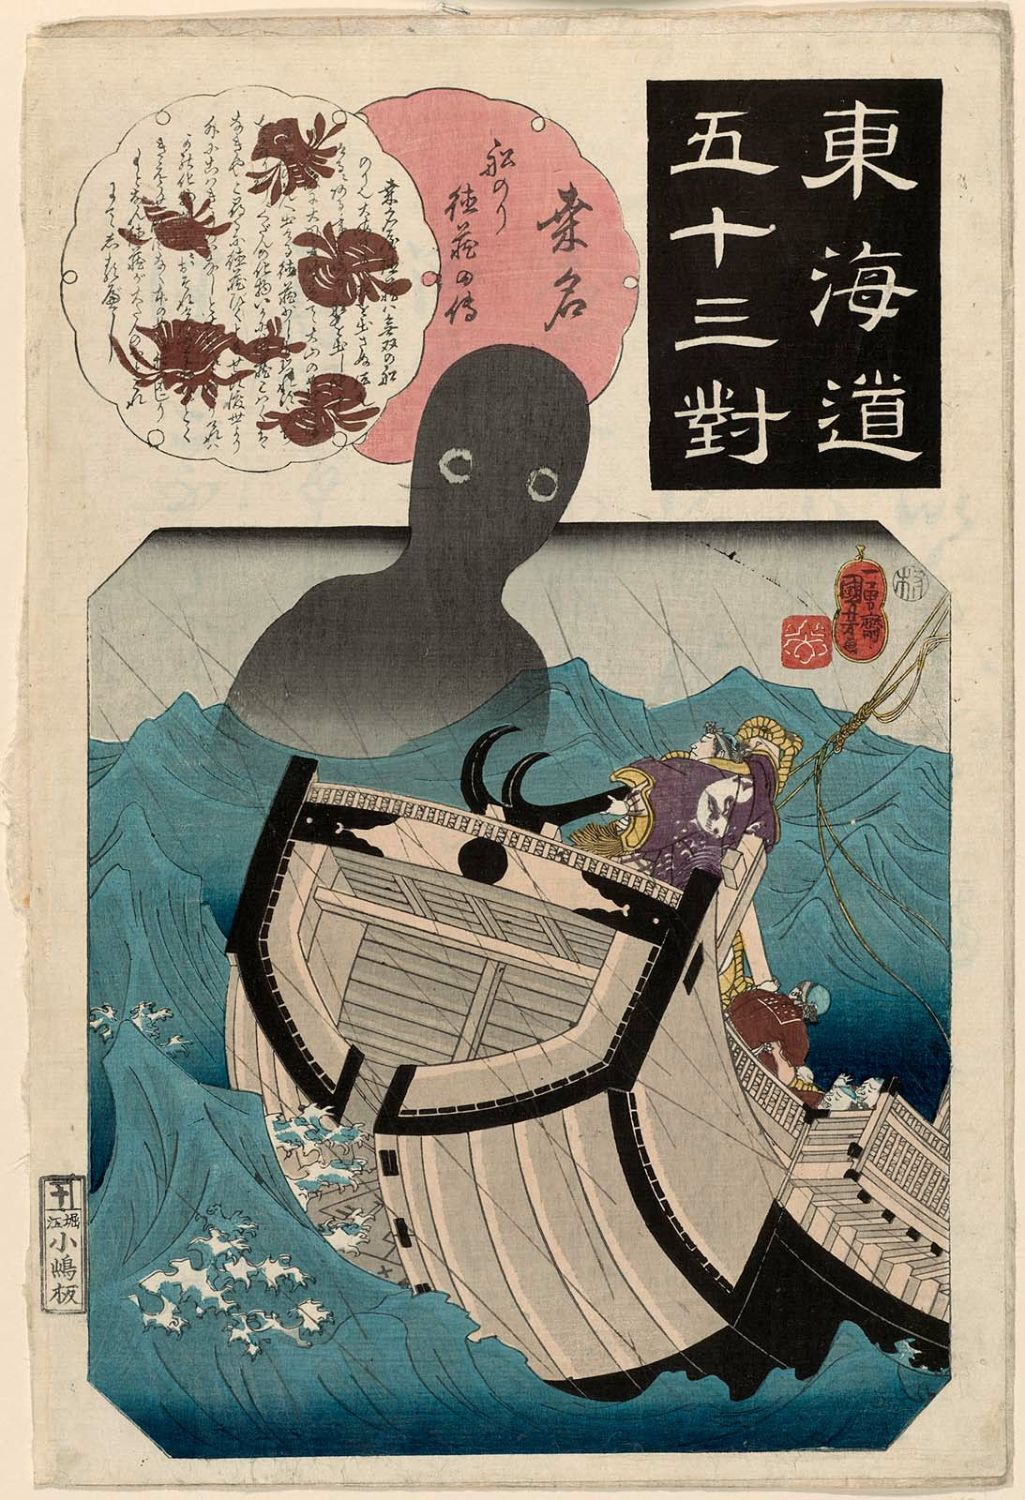 Utagawa Kuniyoshi - The Story of the Sailor Tokuzô (Funanori Tokuzô no den), from the series Fifty-three Pairings for the Tôkaidô Road, 1845-46